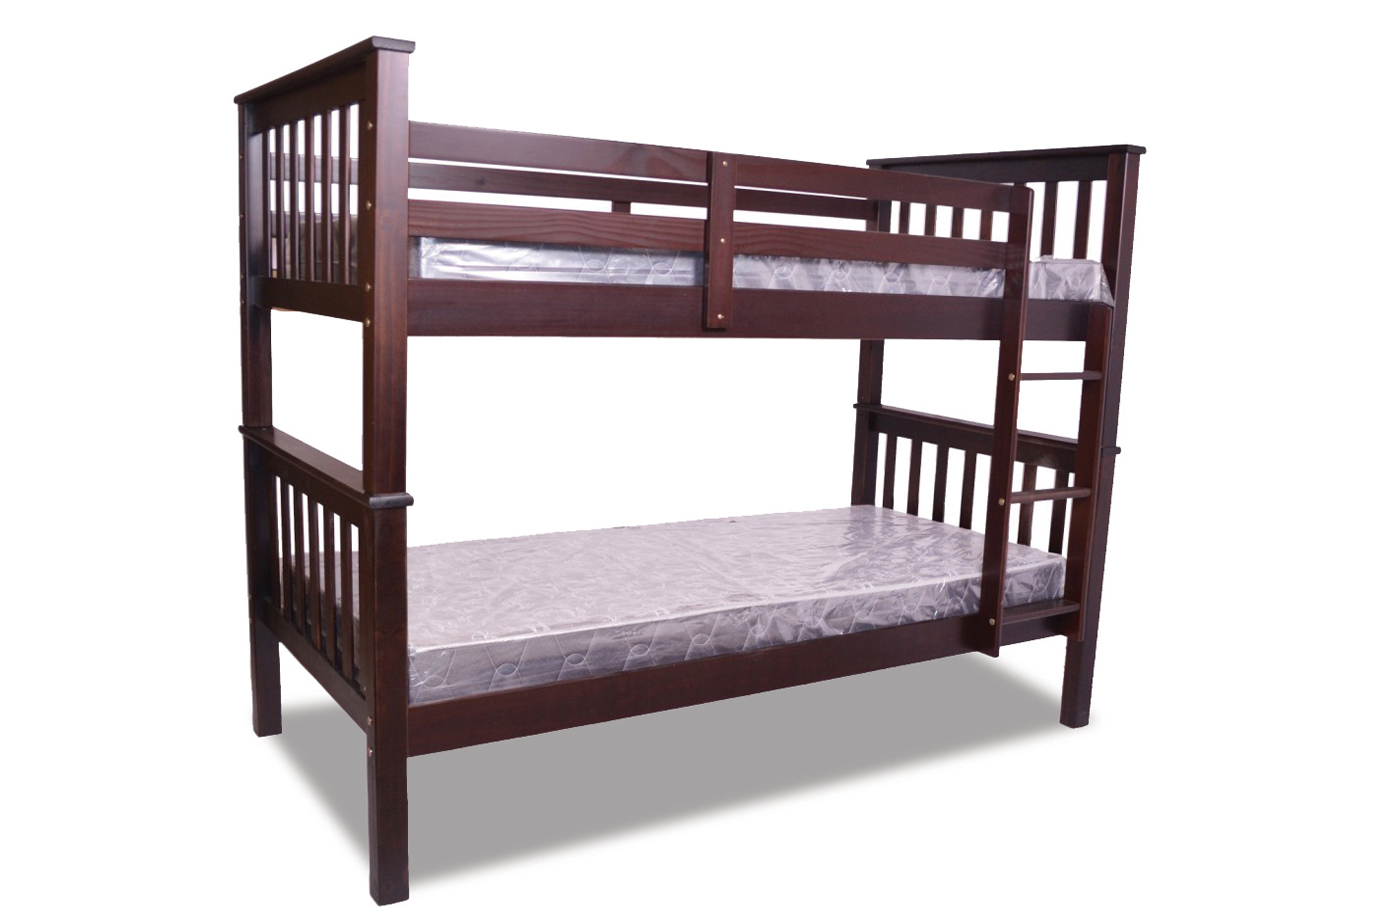 SINGLE OVER SINGLE SOLID WOOD BUNK BED